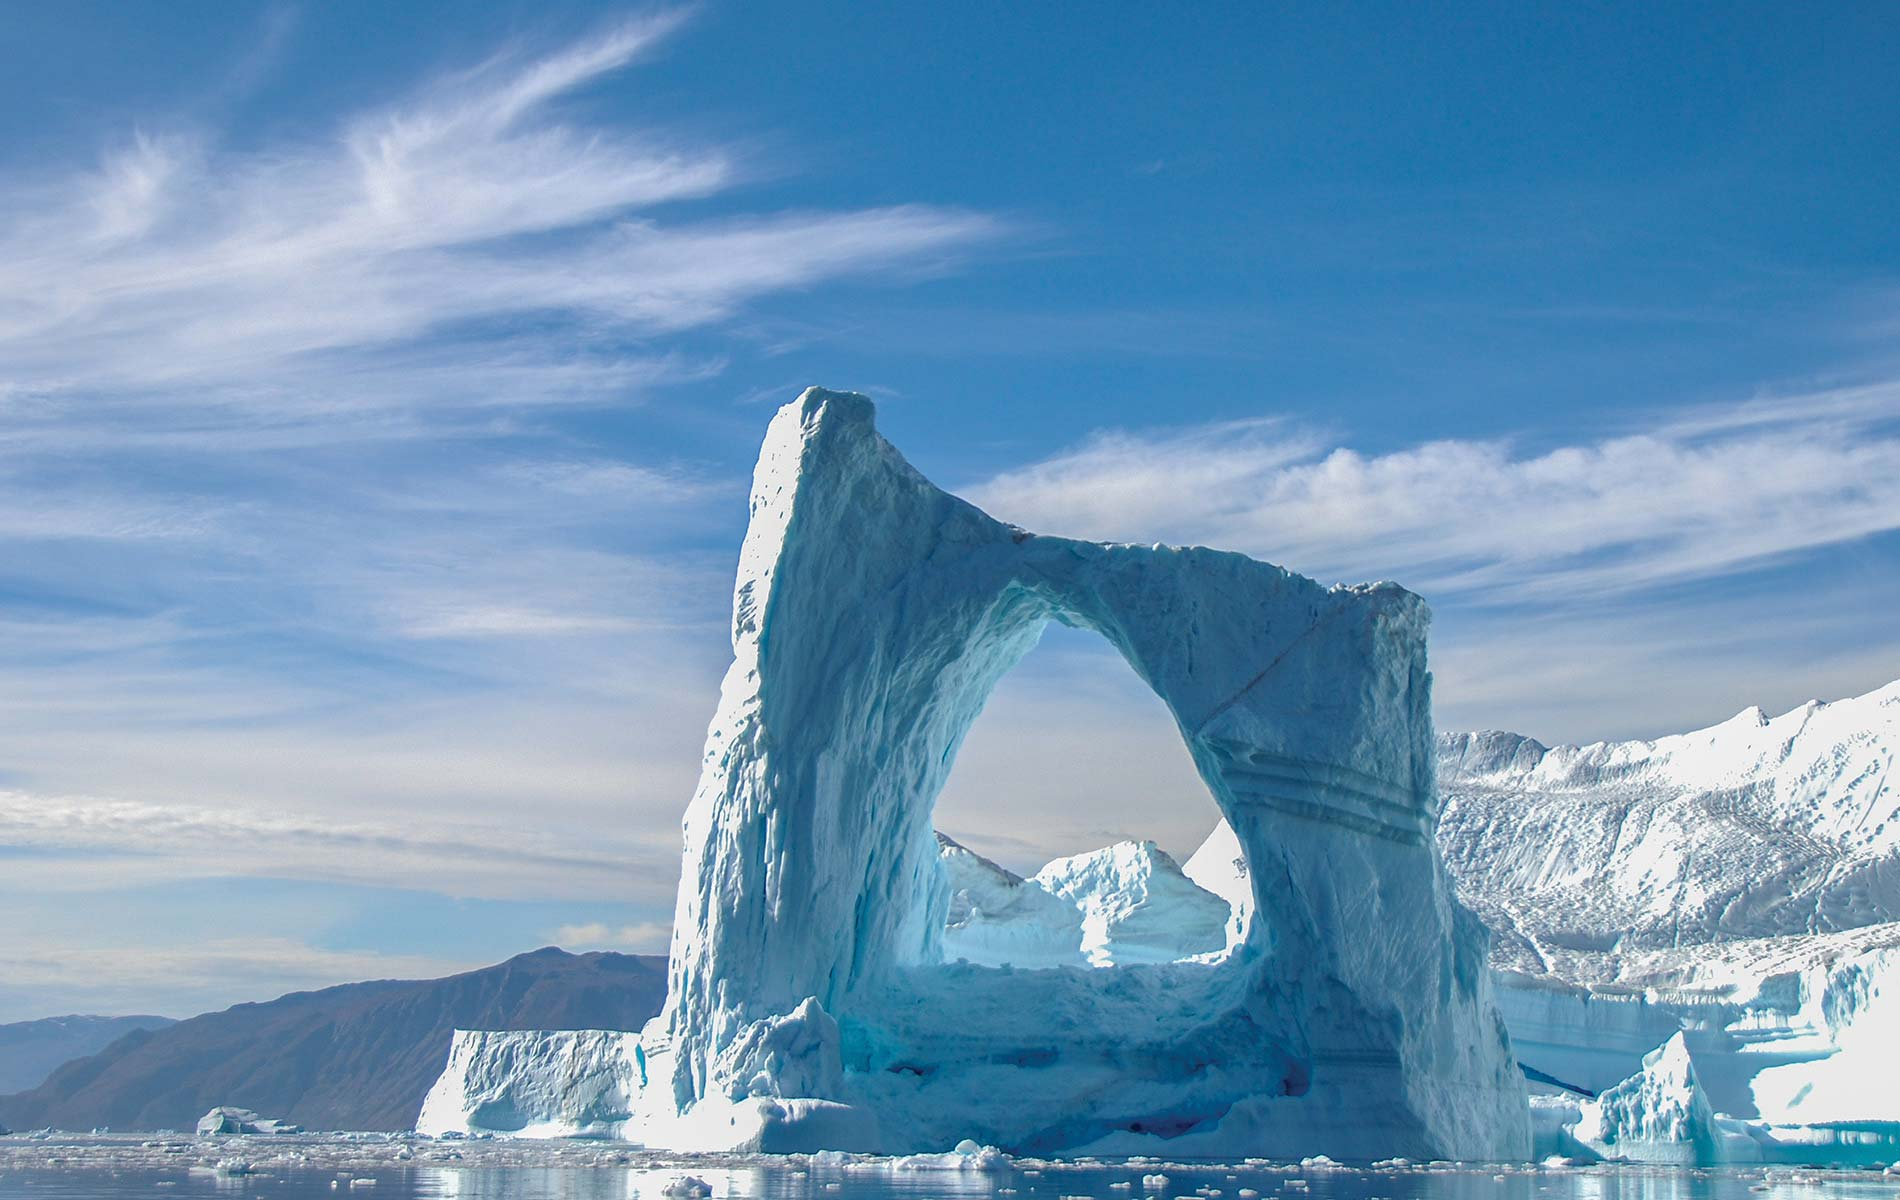 A cruise around Greenland will offer many incredible sights, such as this majestic arched iceberg.